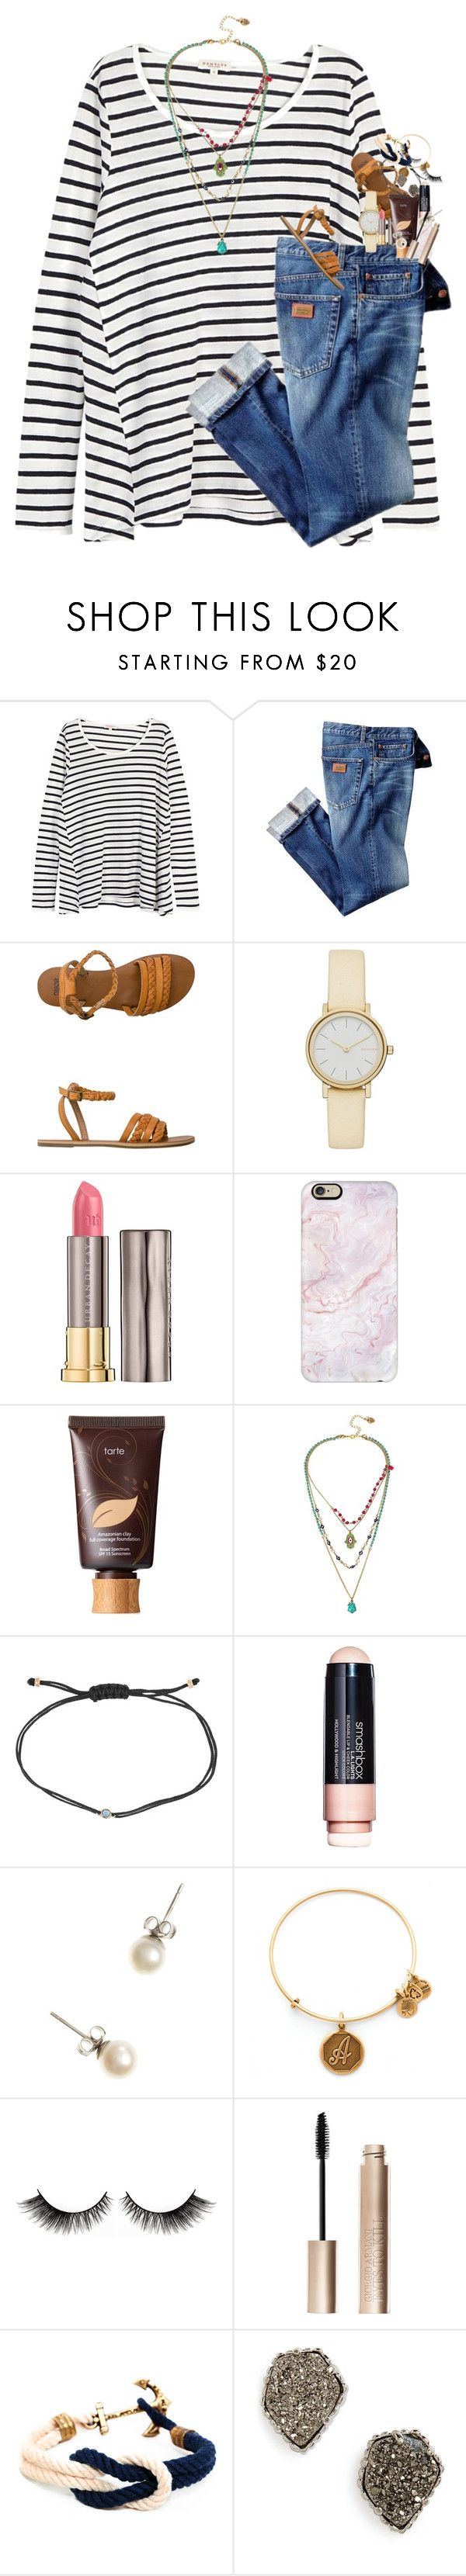 """what are some cool tumblrish usernames for Instagram?"" by classynsouthern ❤ liked on Polyvore featuring Demylee, Billabong, Skagen, Urban Decay, Casetify, tarte, Betsey Johnson, Melissa Joy Manning, Smashbox and J.Crew"